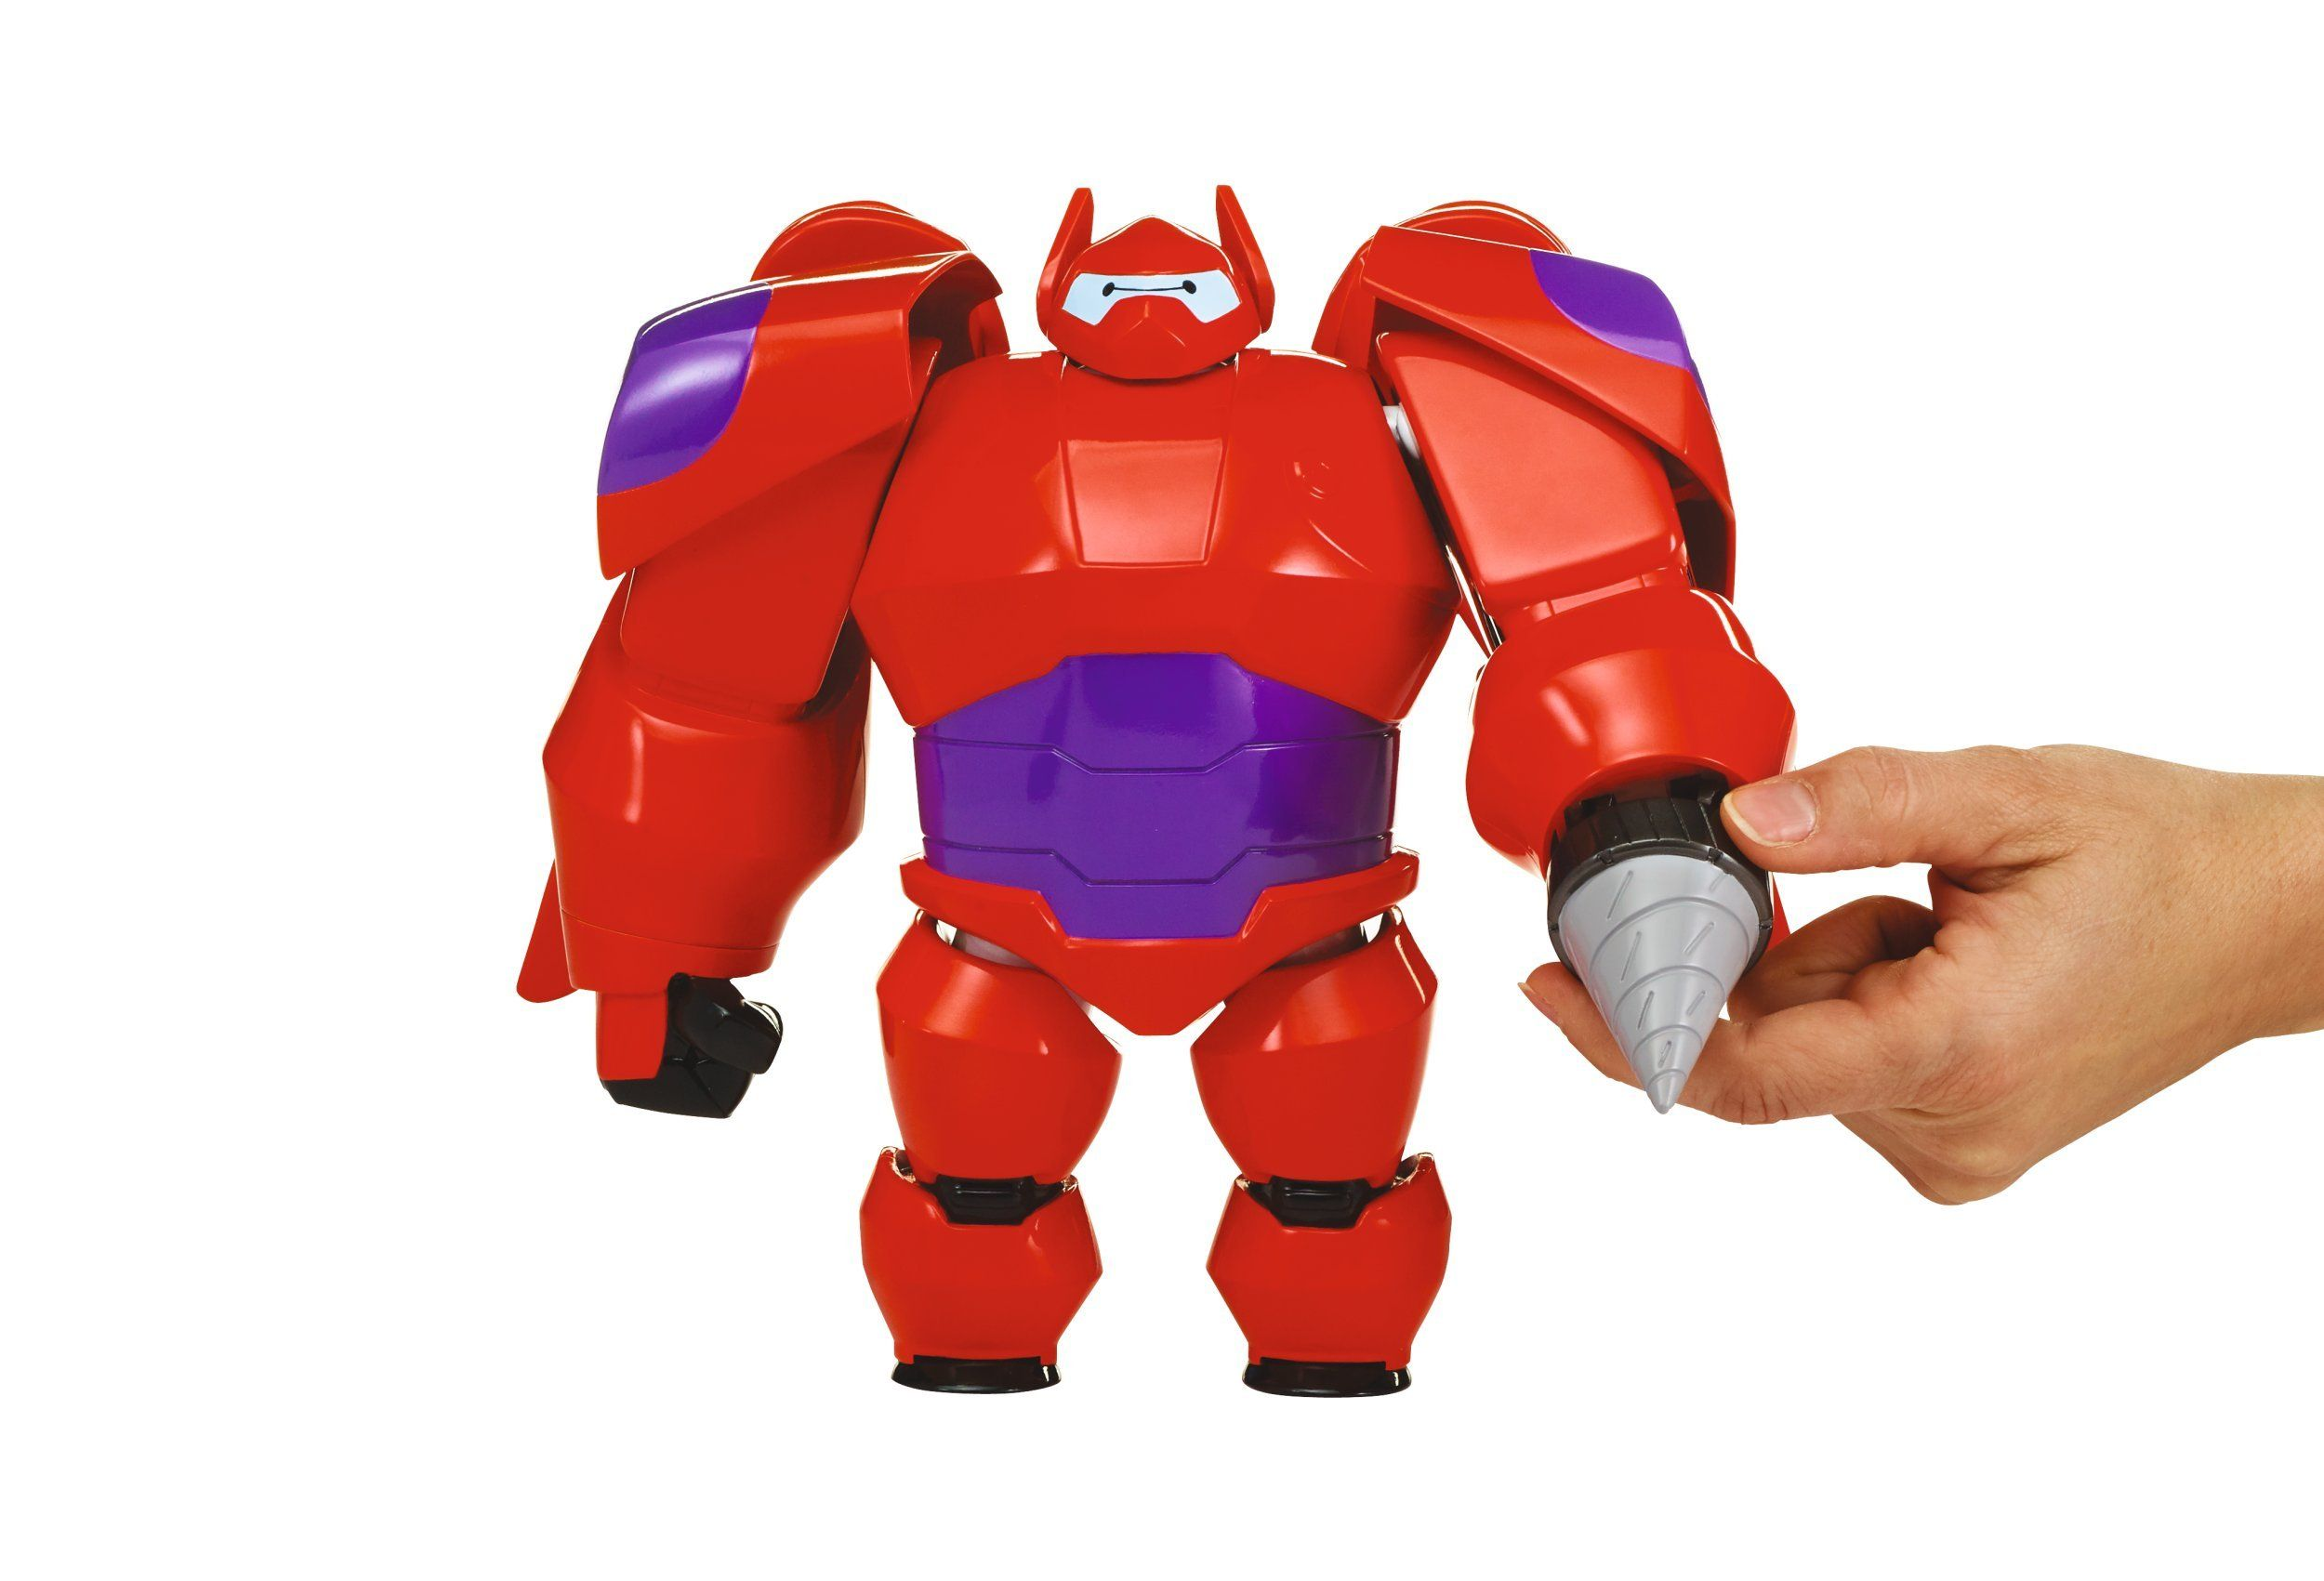 Big Hero 6 Armored Up Baymax Action Figure Want To Know More Click On The Image Note Amazon Affiliate Link Actionto Big Hero 6 Big Hero Action Figures